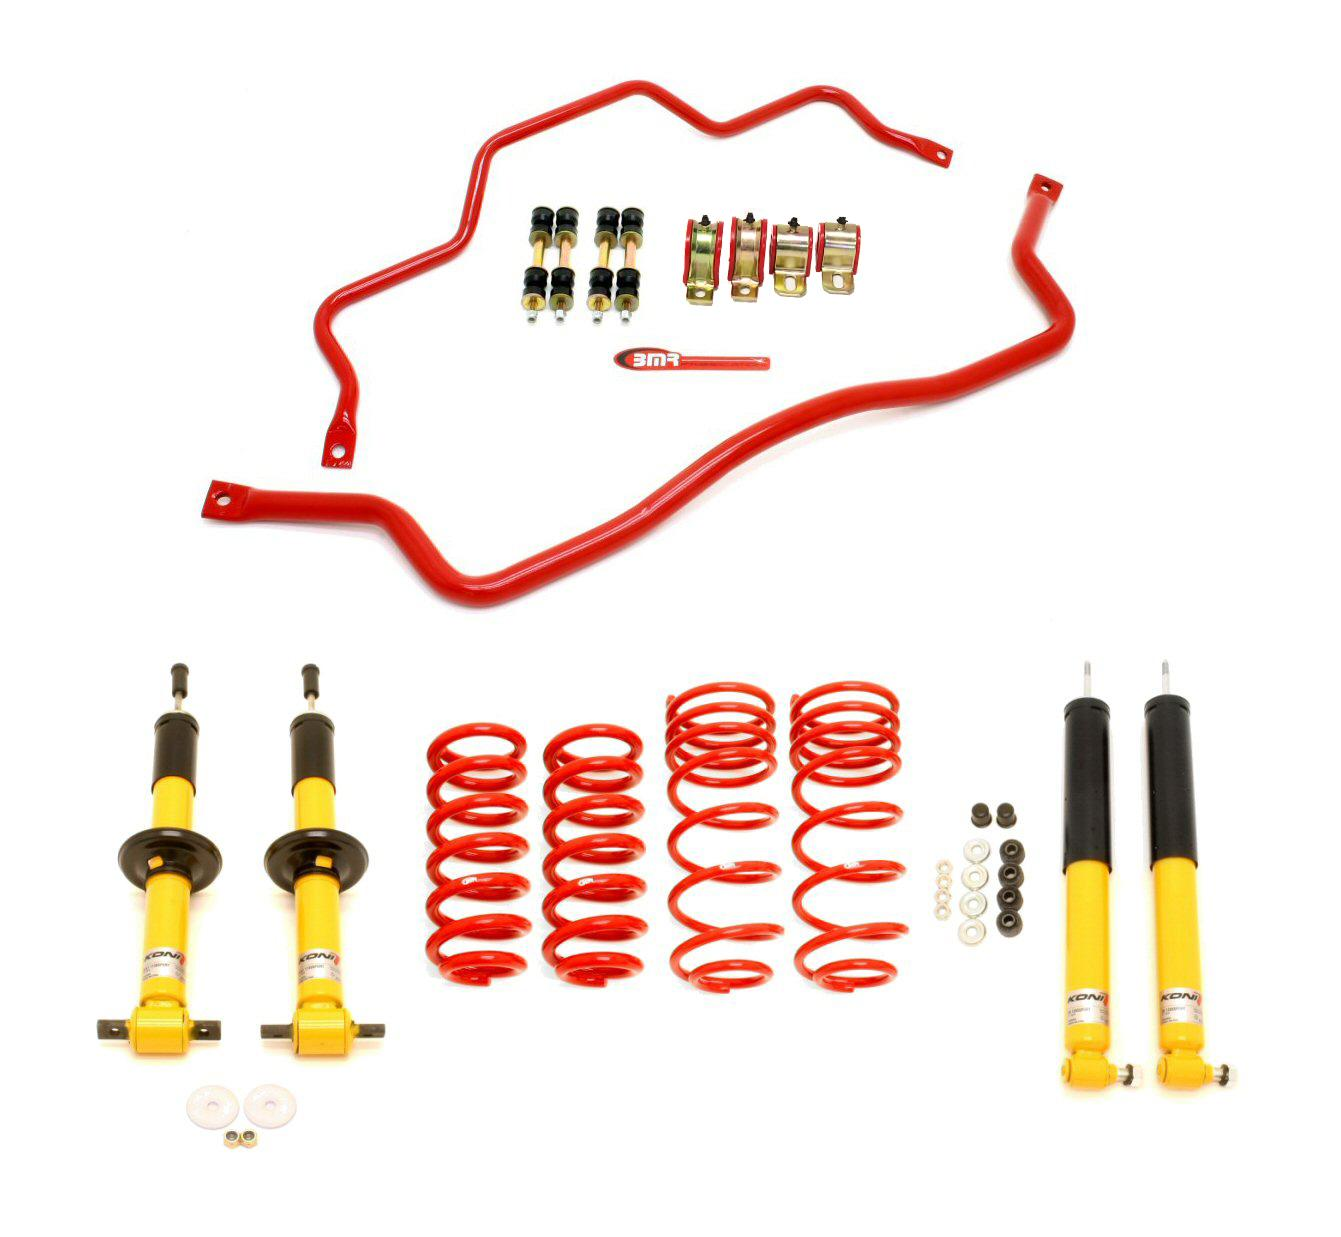 93-02 Fbody BMR Suspension Koni Handling Performance Package - Level 3